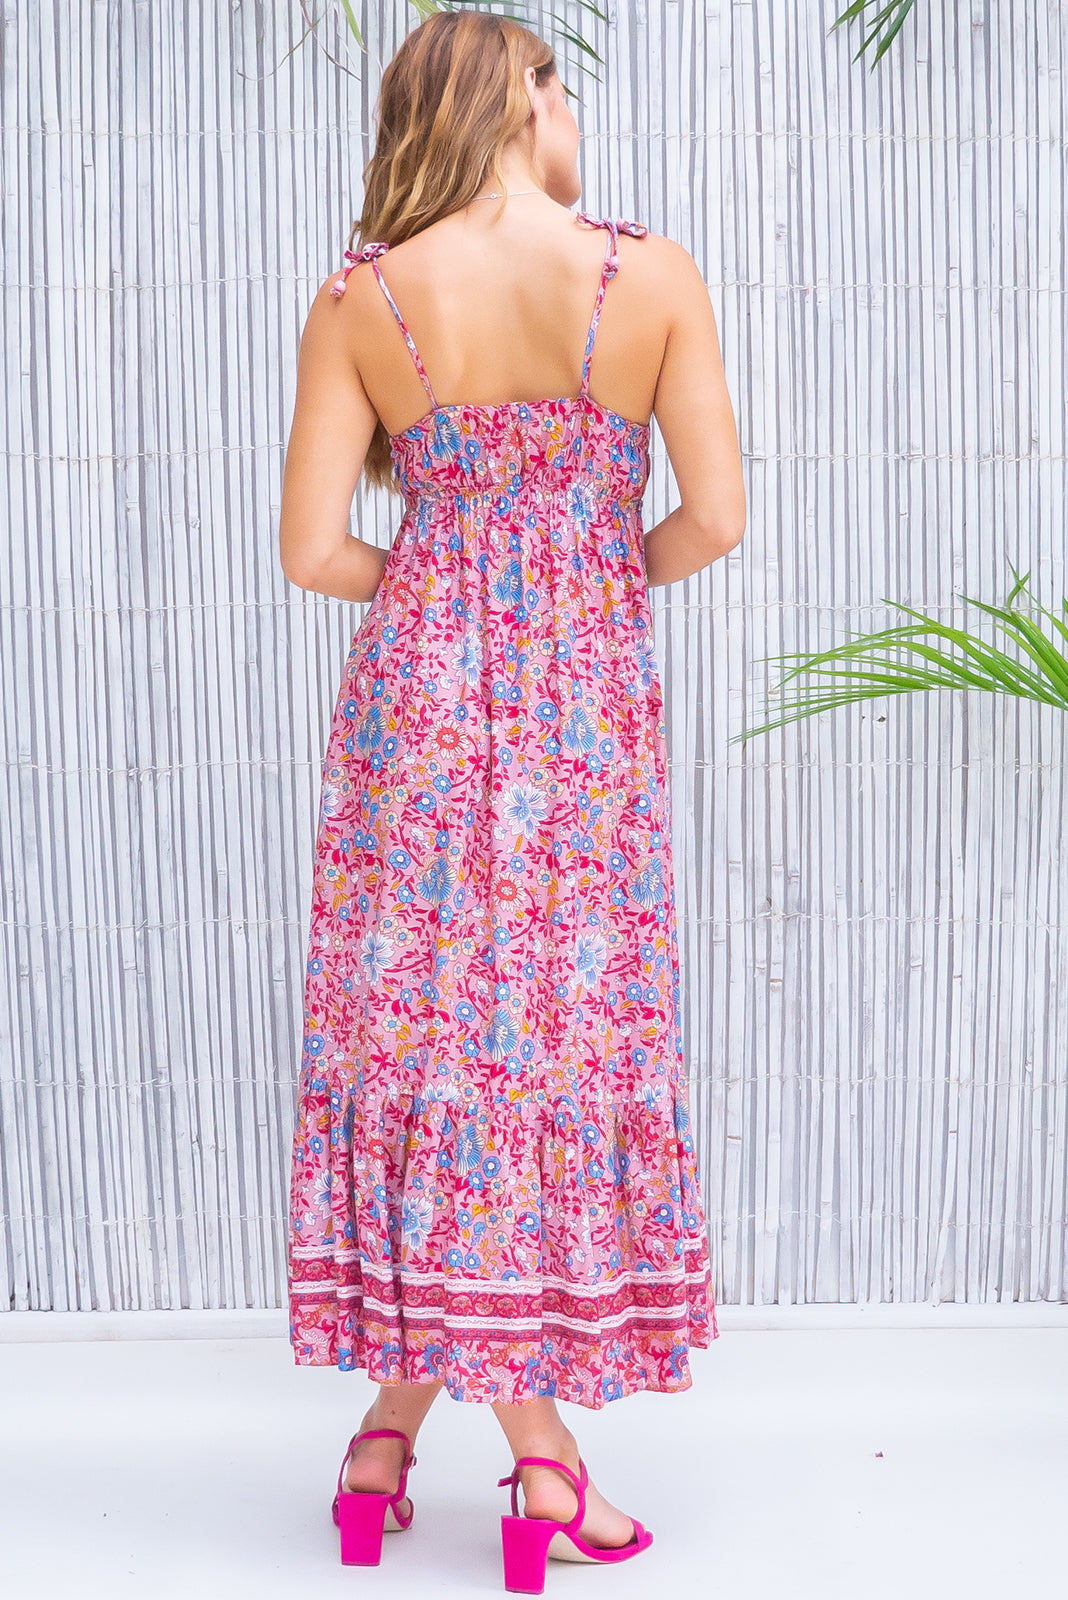 Sapphire Raspberry Maxi Dress, pretty pink dress features elasticated under bust, empire line, sleeveless with adjustable tie up straps, print placement will vary, side pockets, soft pink base with raspberry, blue, white and yellow floral print in woven 100% rayon.